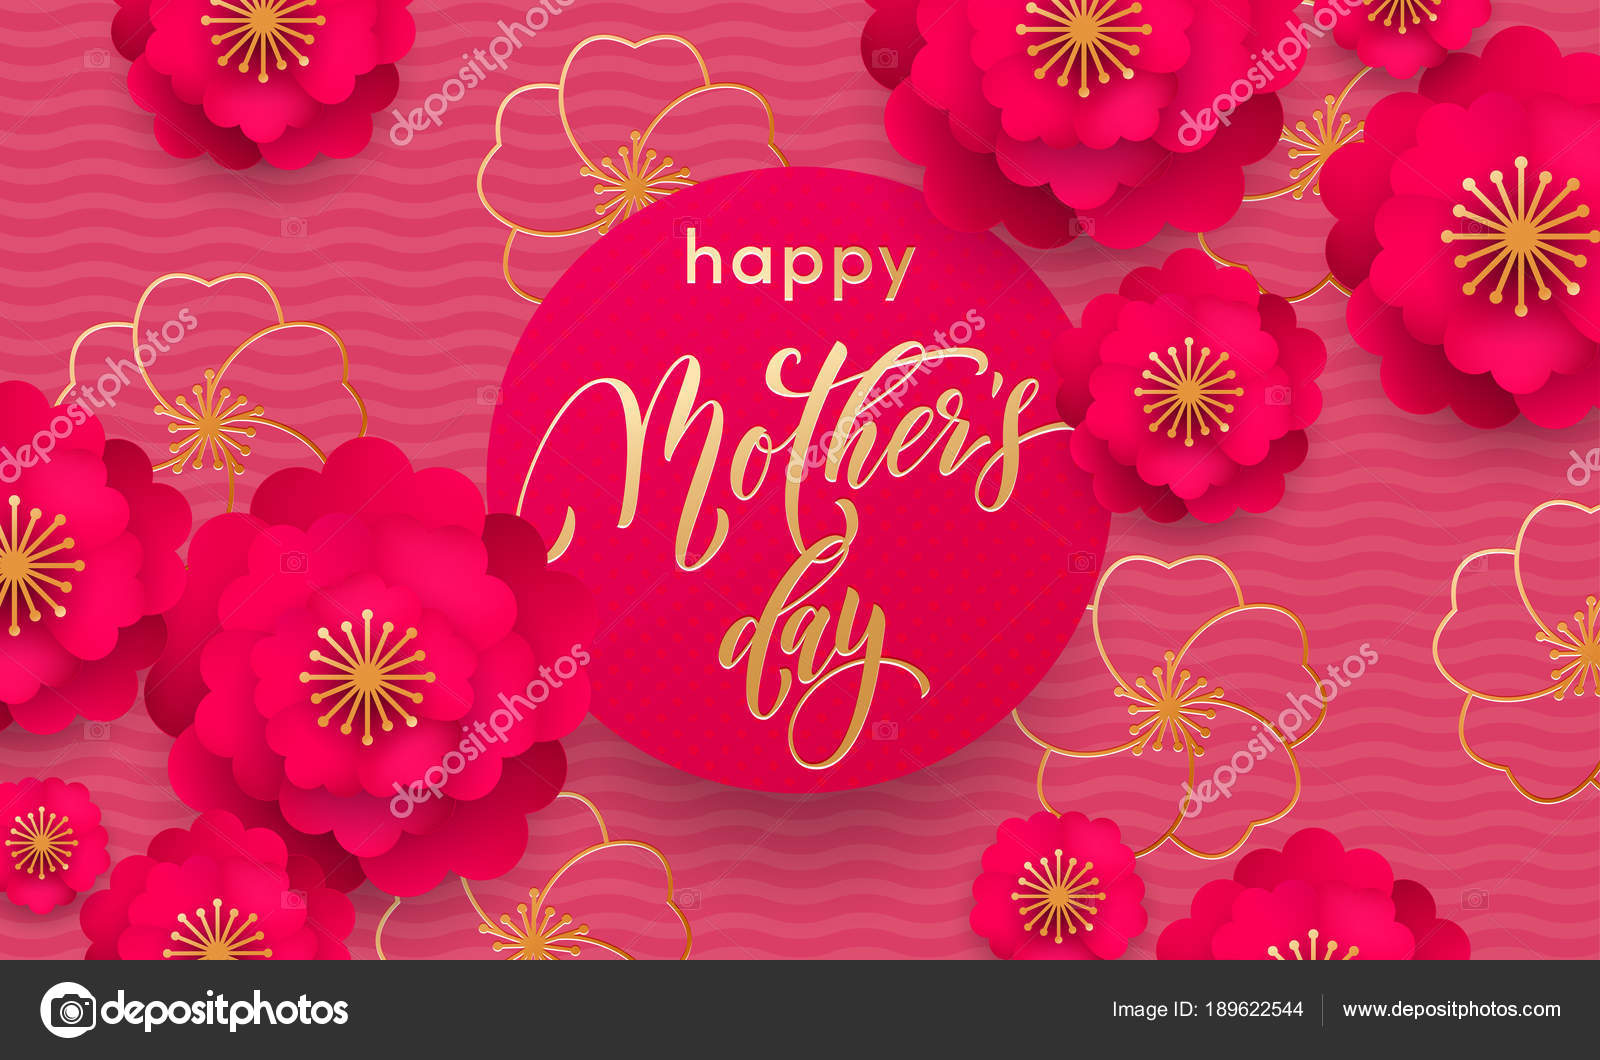 Mothers day greeting card or red flower in gold glitter pattern mothers day greeting card or red flower in gold glitter pattern poster and golden text design template for springtime seasonal mother day holiday design m4hsunfo